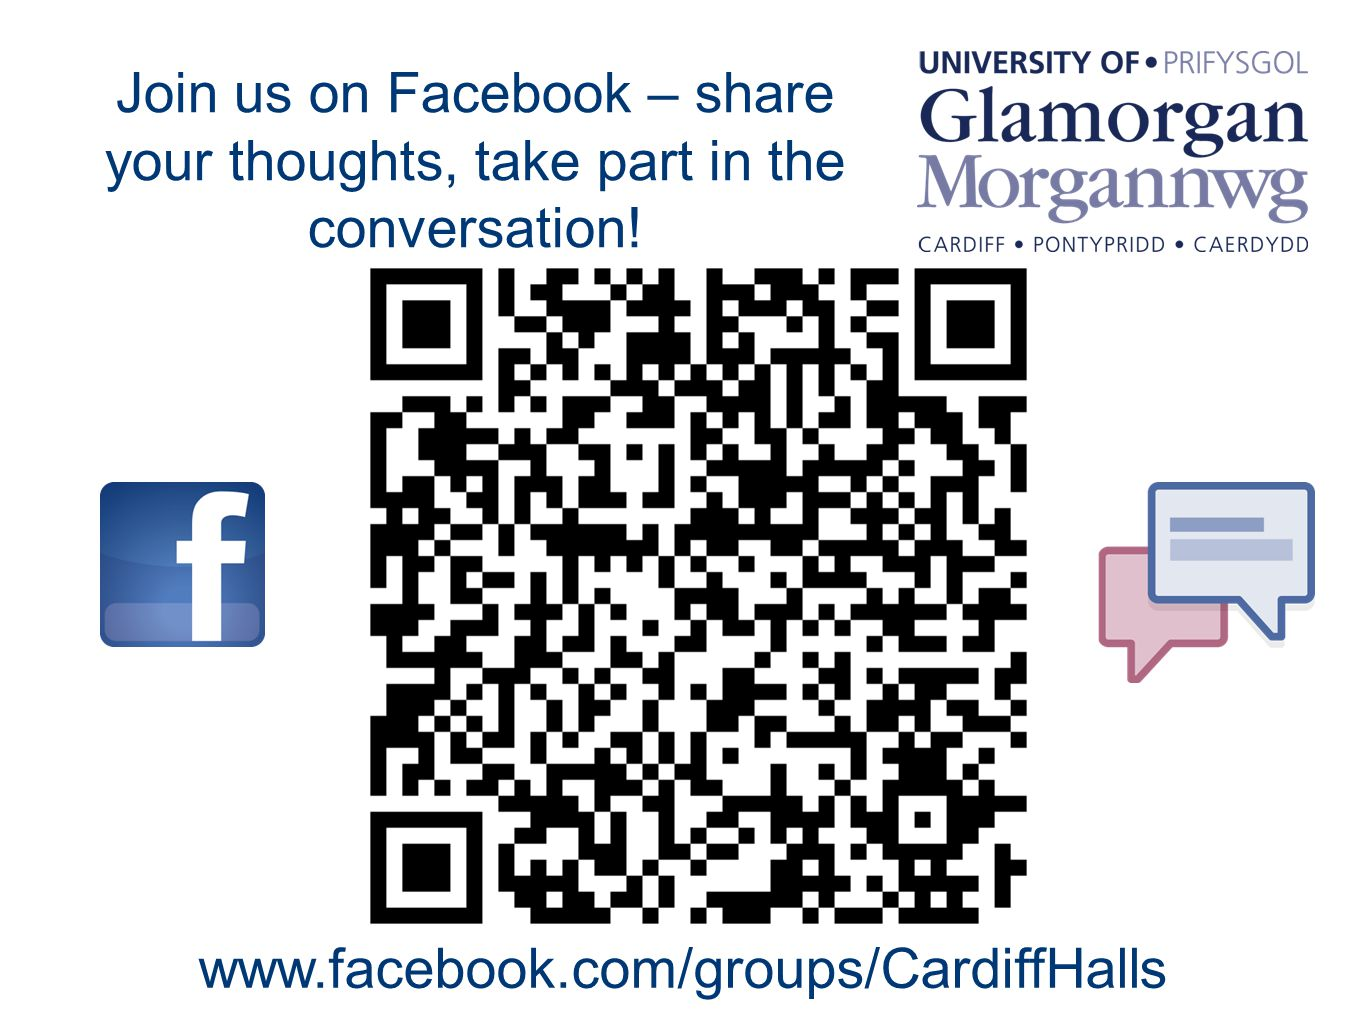 Join us on Facebook – share your thoughts, take part in the conversation.